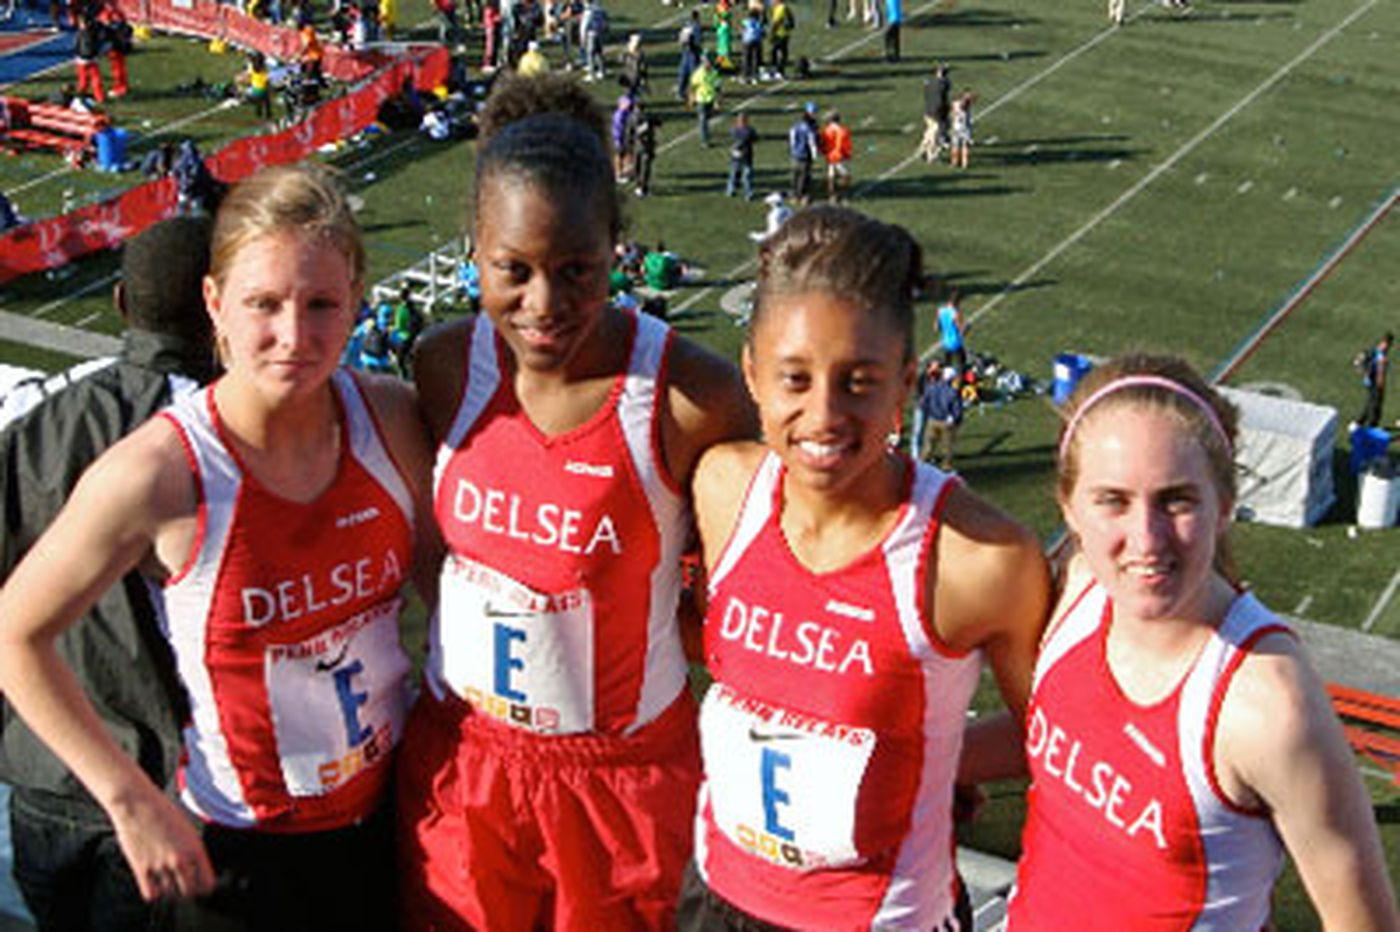 Delsea relay team used to setting records